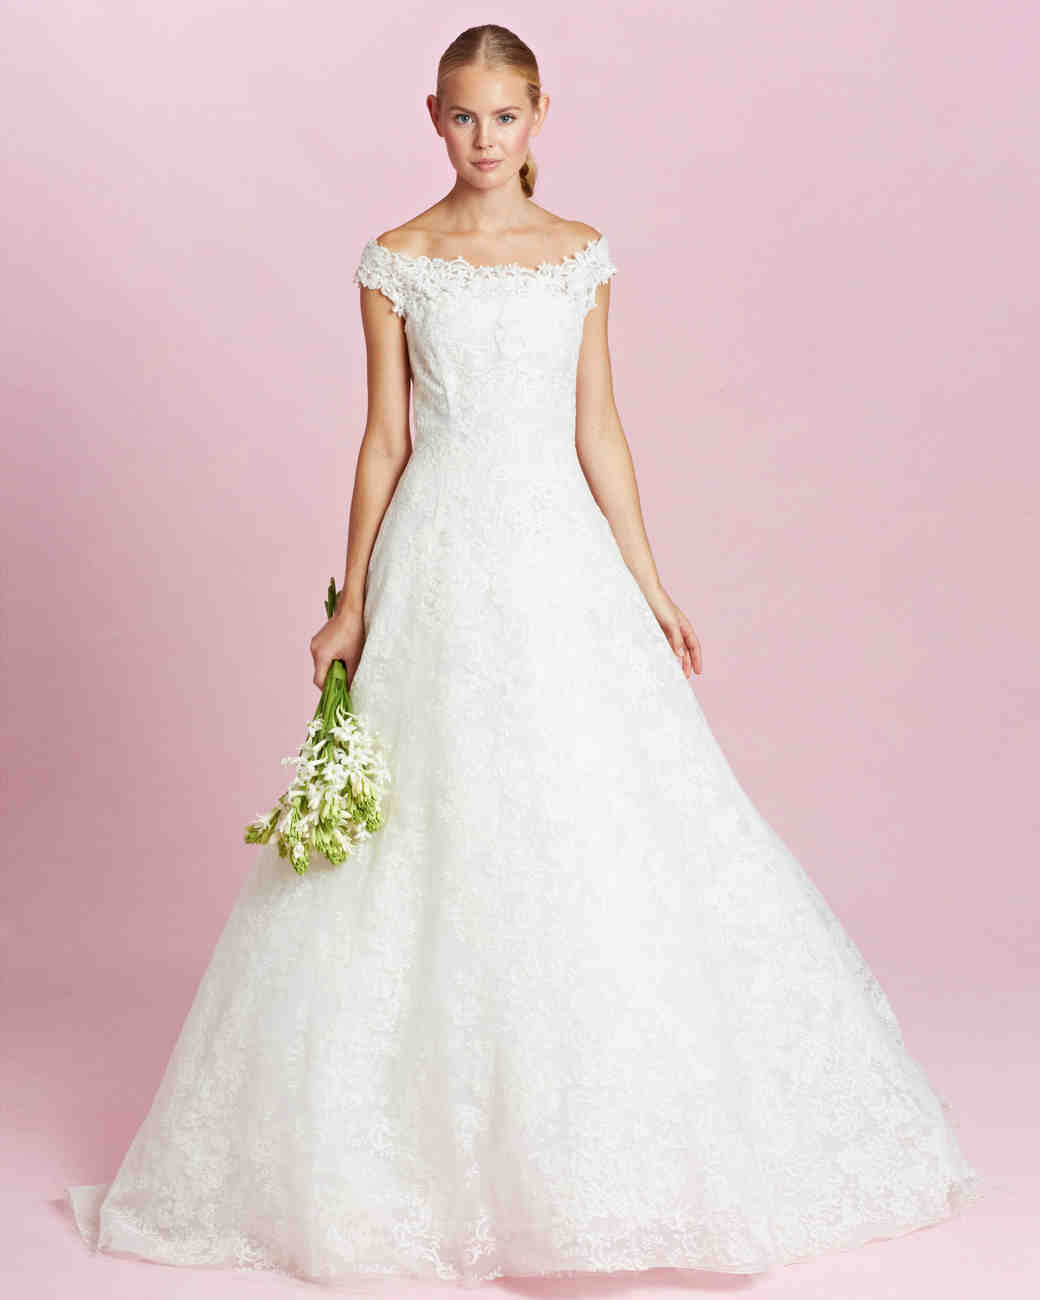 Carolina Herrera Fall 2015 Bridal Collection | Martha Stewart Weddings